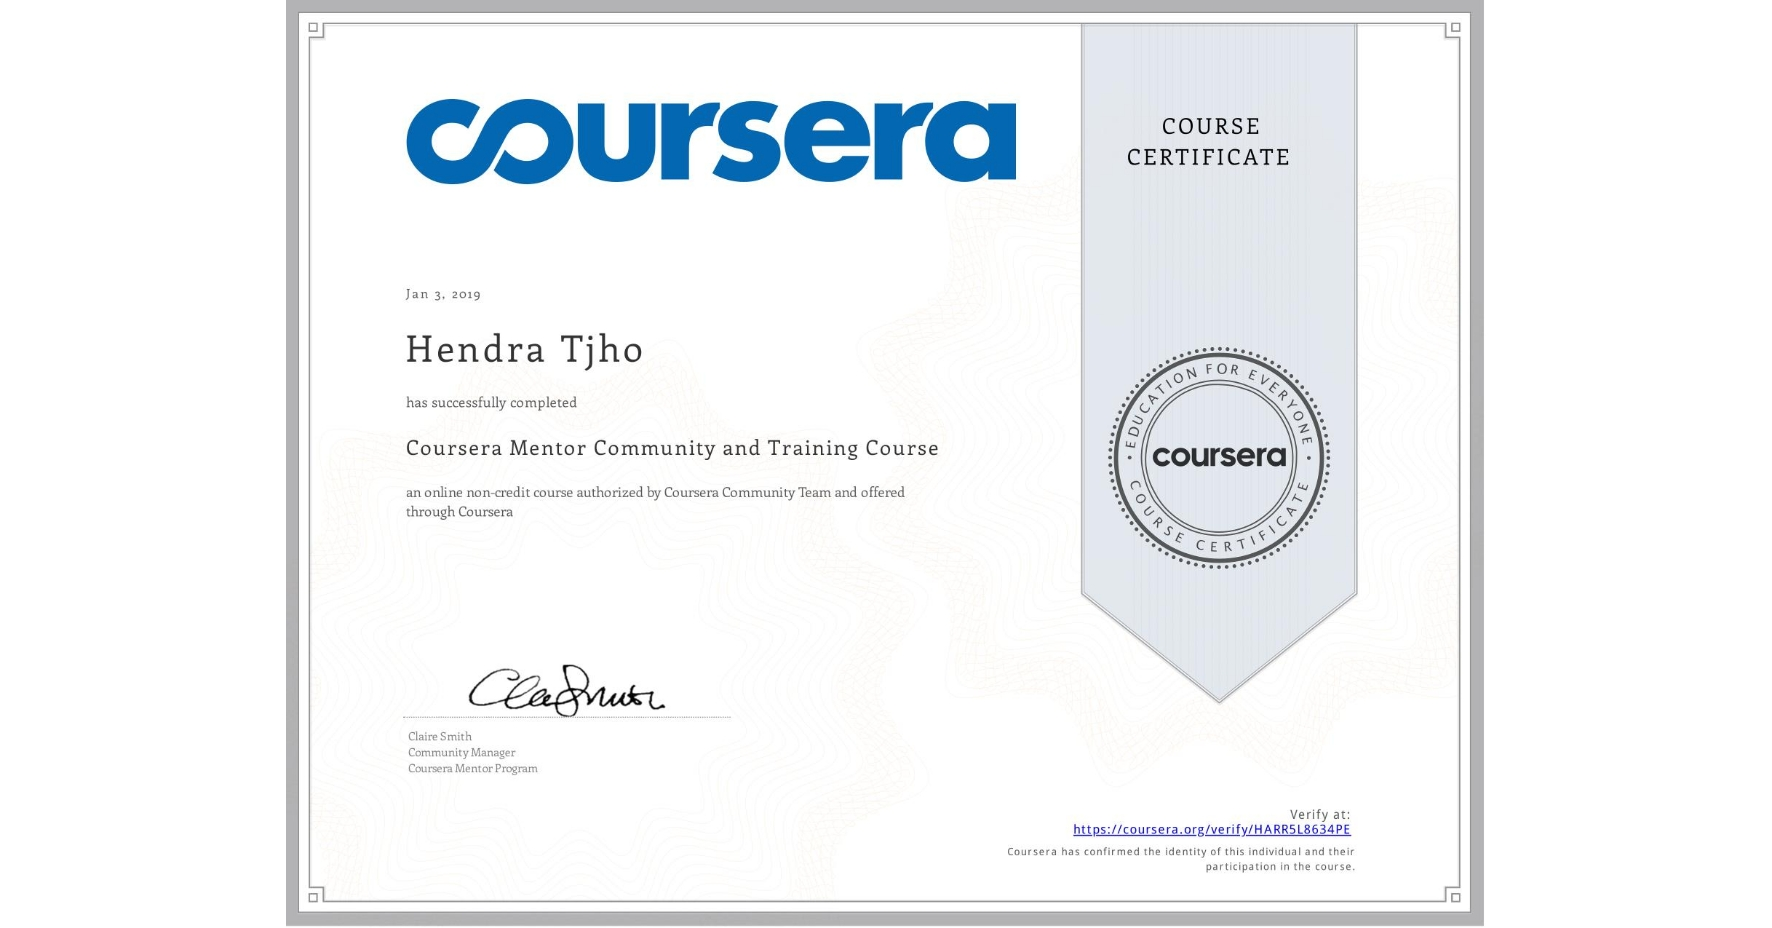 View certificate for Hendra Tjho, Coursera Mentor Community and Training Course, an online non-credit course authorized by Coursera Community Team and offered through Coursera